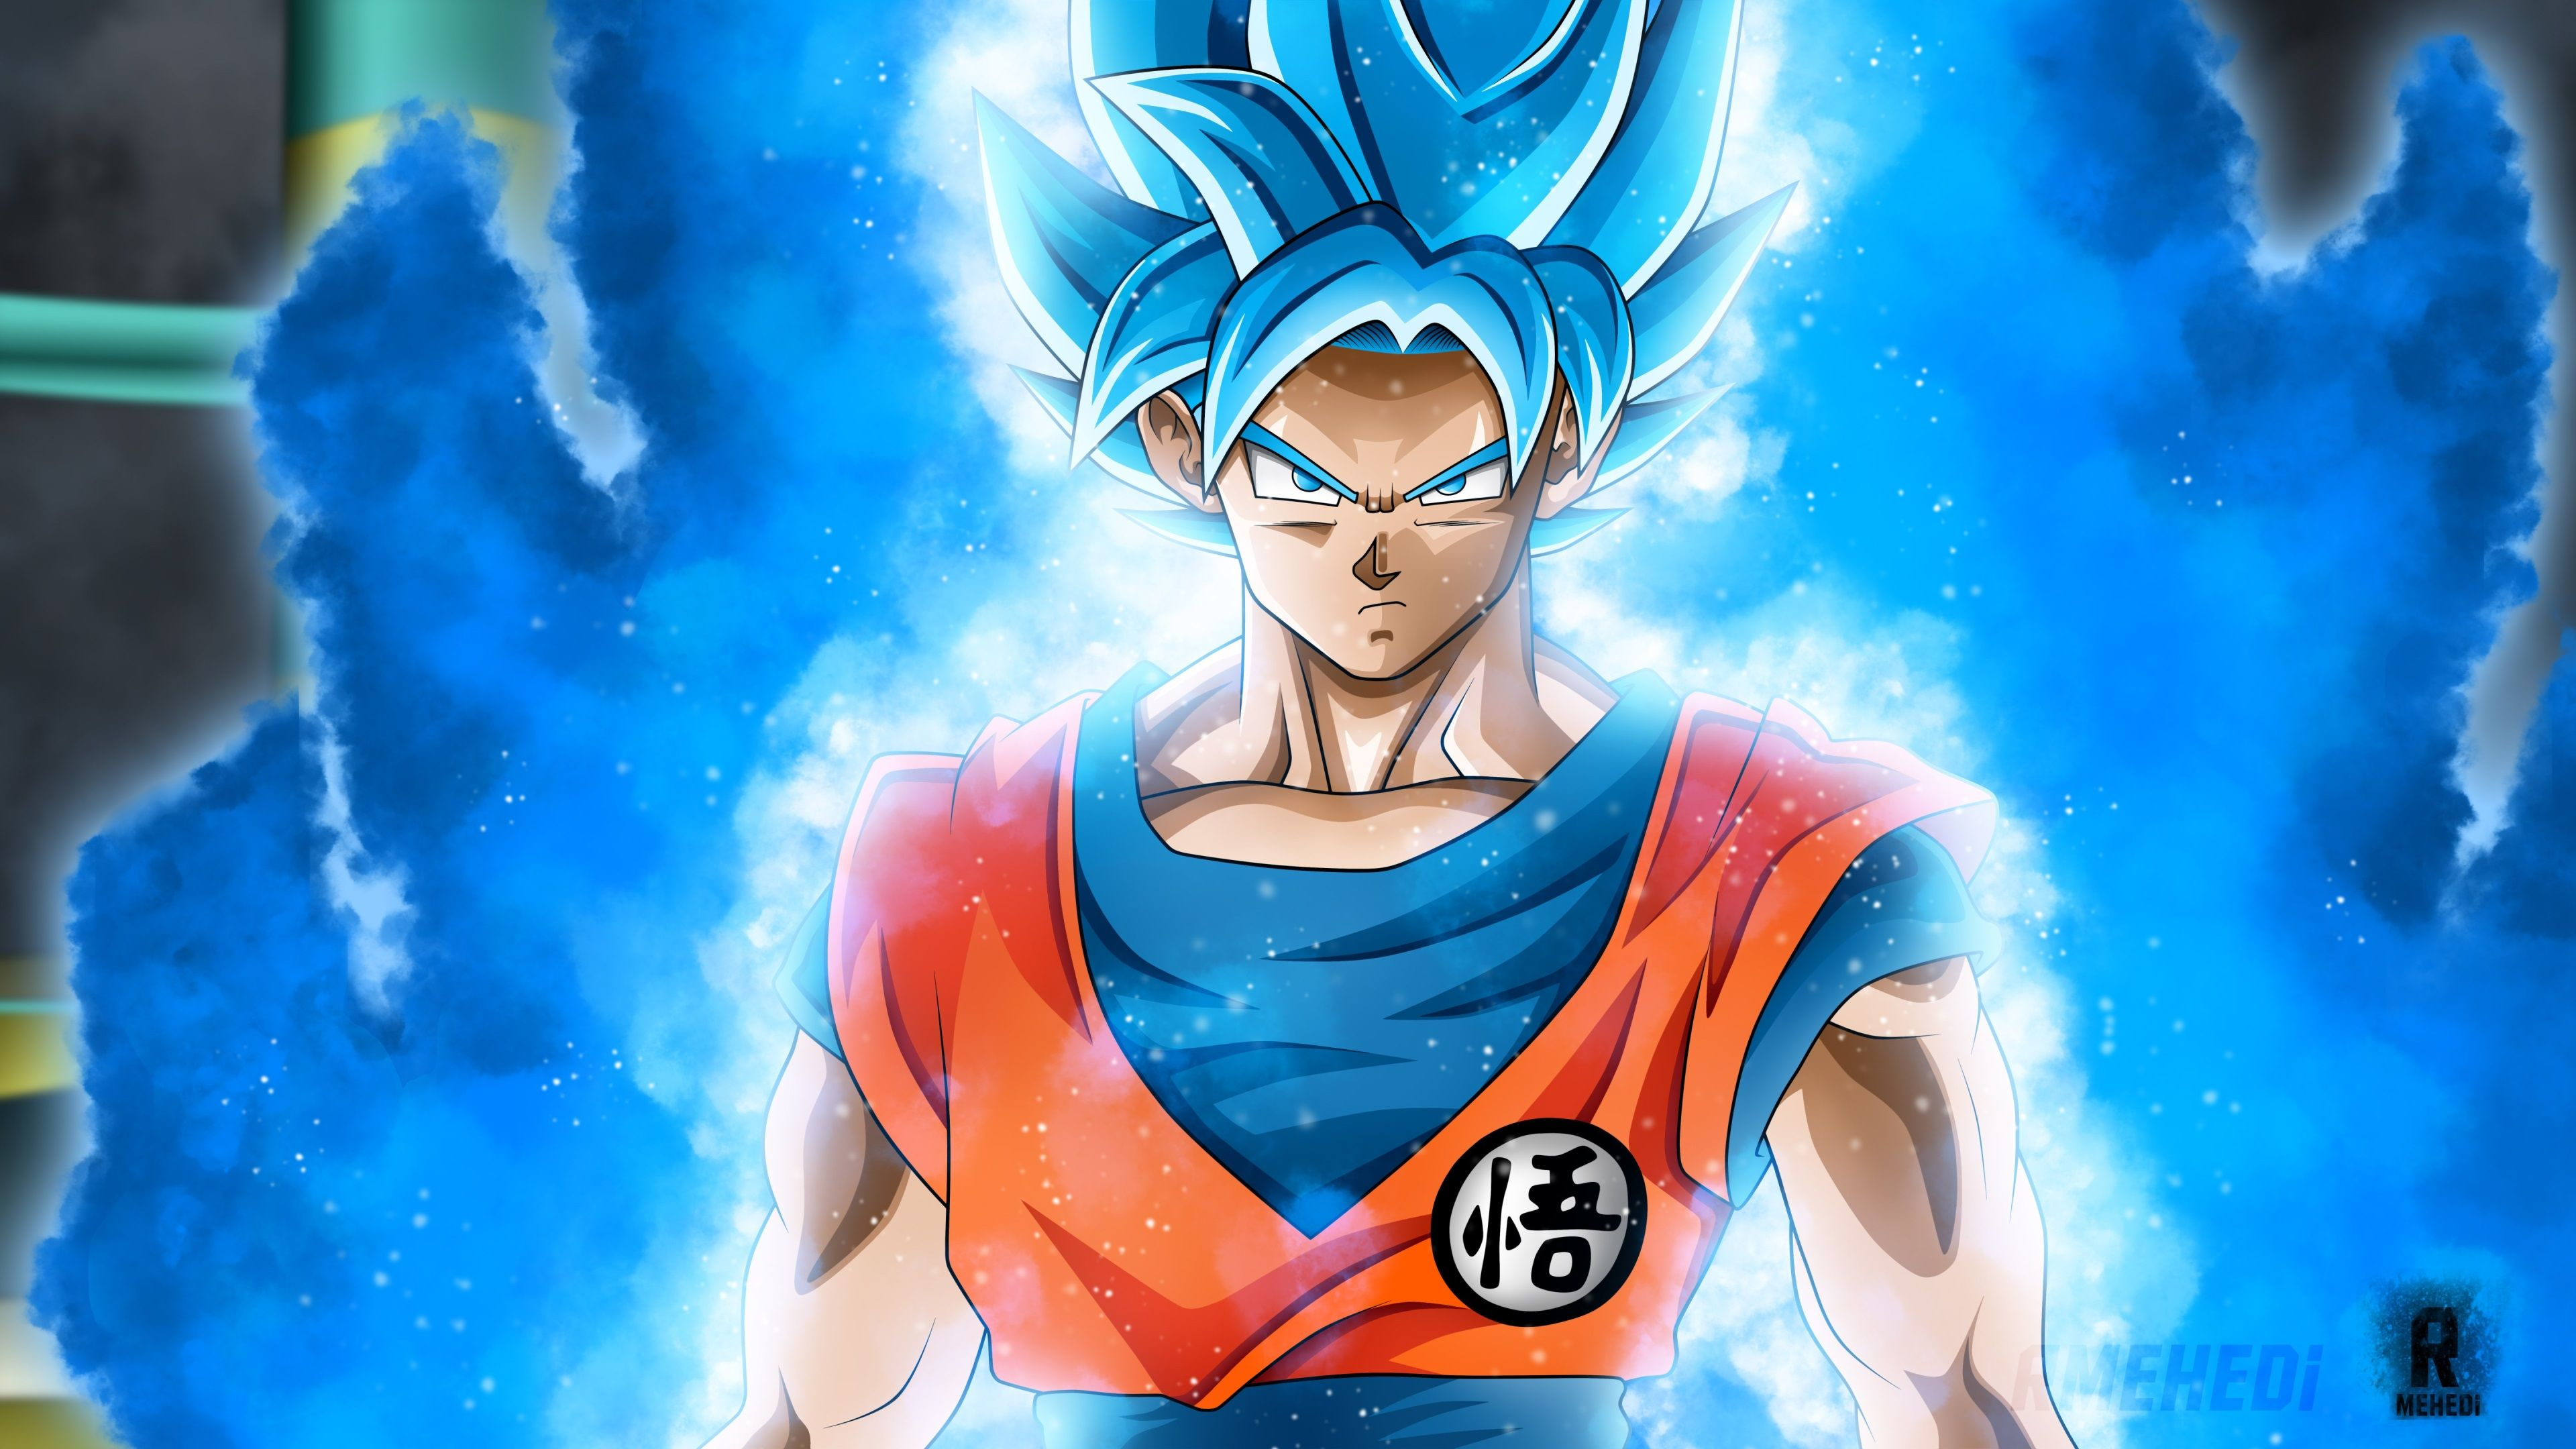 3840x2160 Goku 4k Wallpaper For Desktop Background Goku Wallpaper Goku Super Saiyan Blue Dragon Ball Super Goku